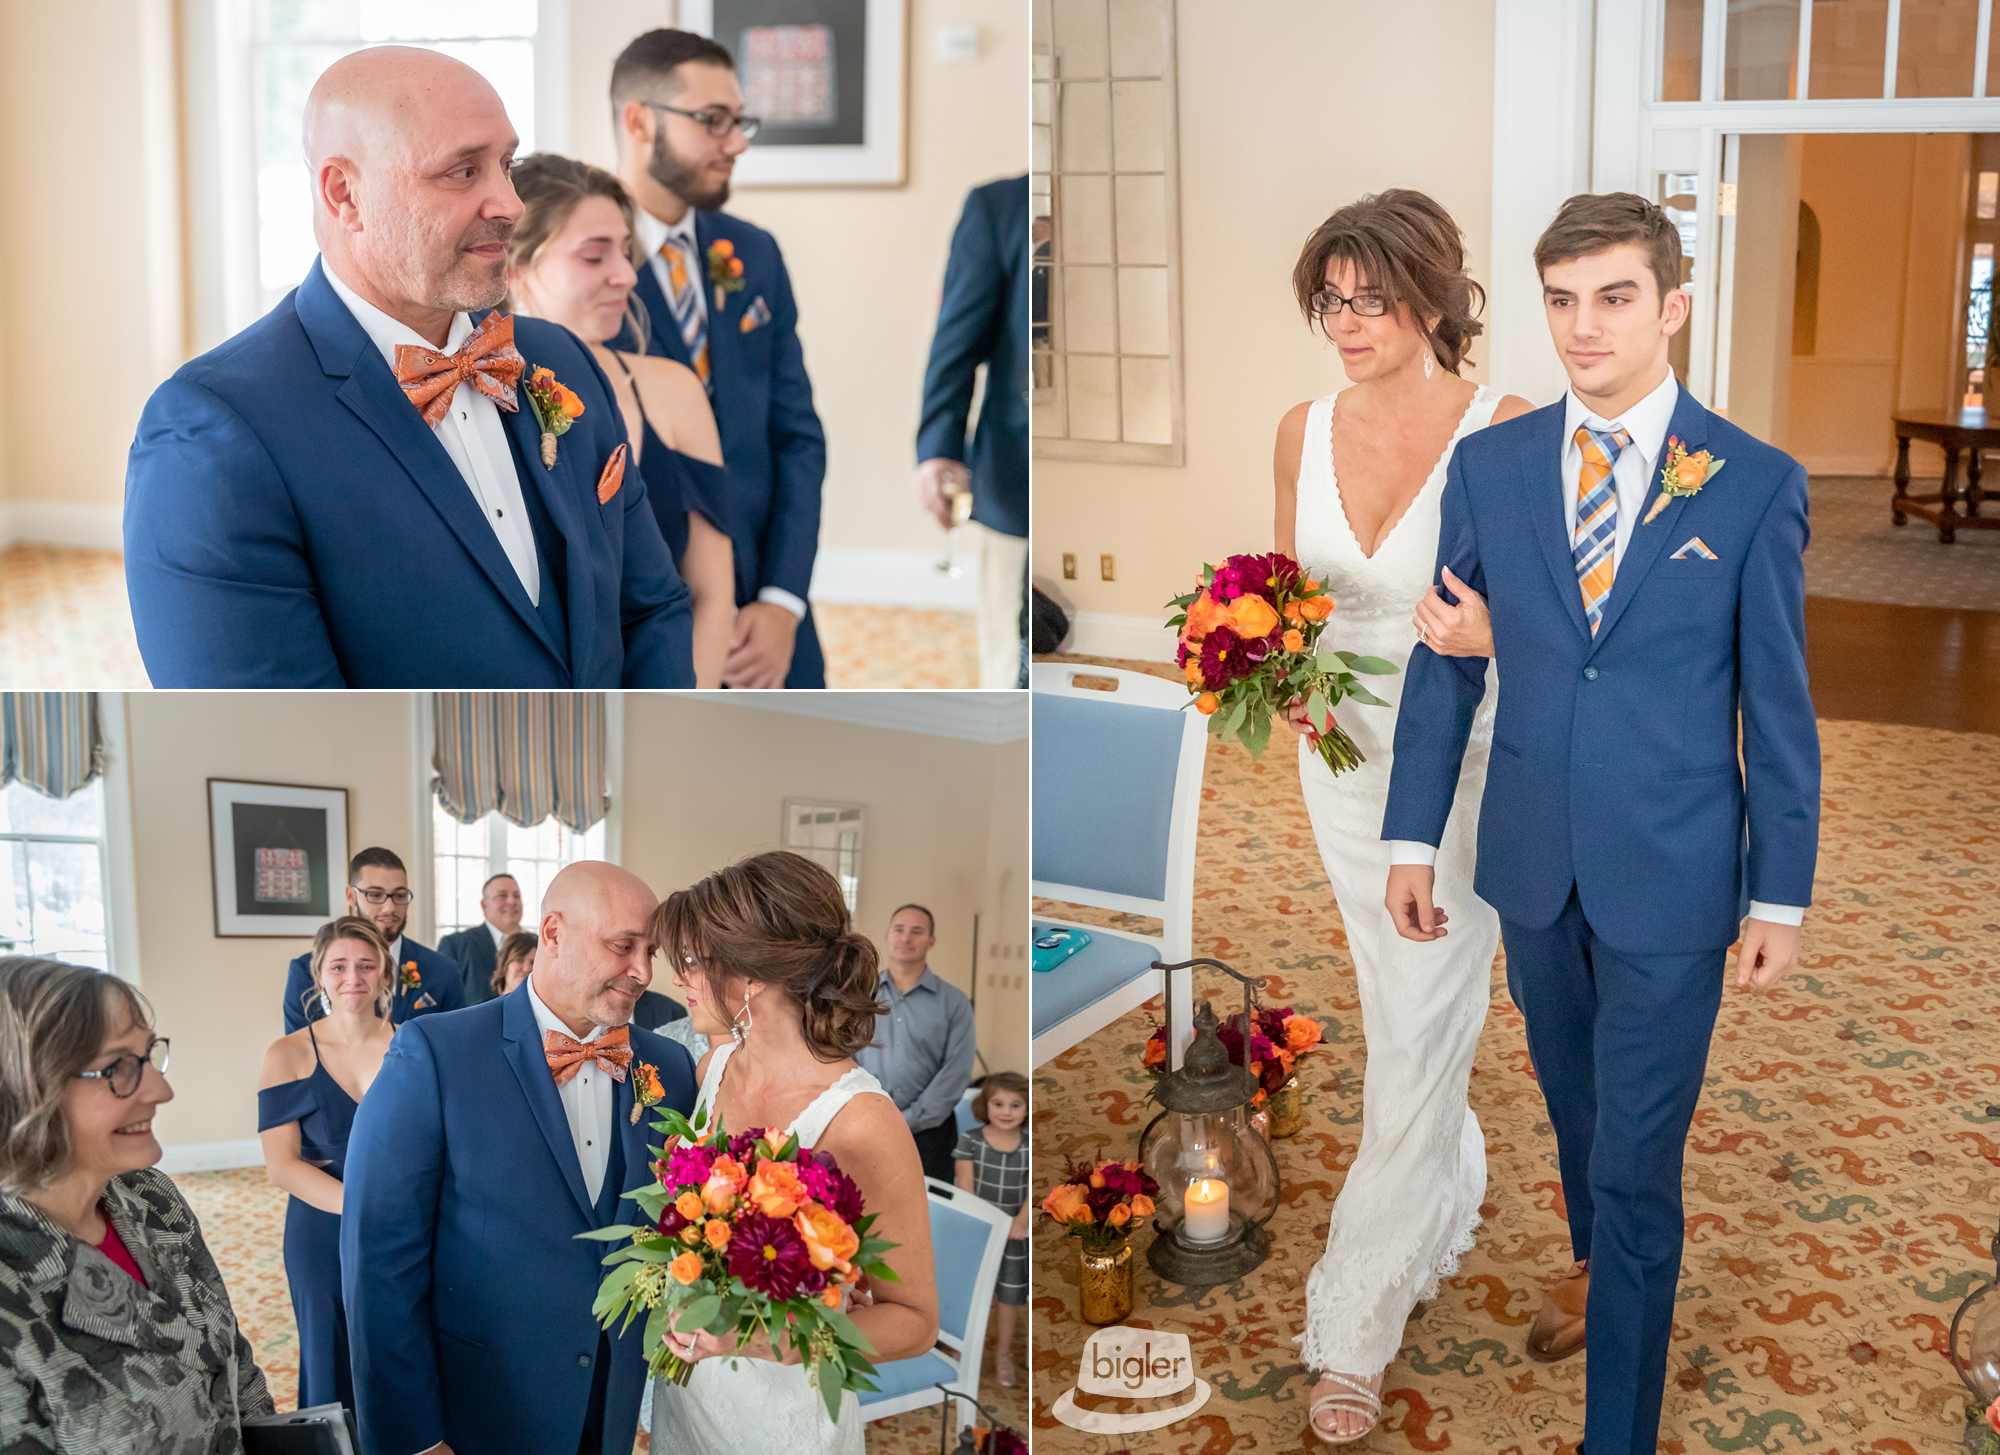 20181123_-_13_-_Melissa_and_Richard_Otesaga_Wedding_Photos